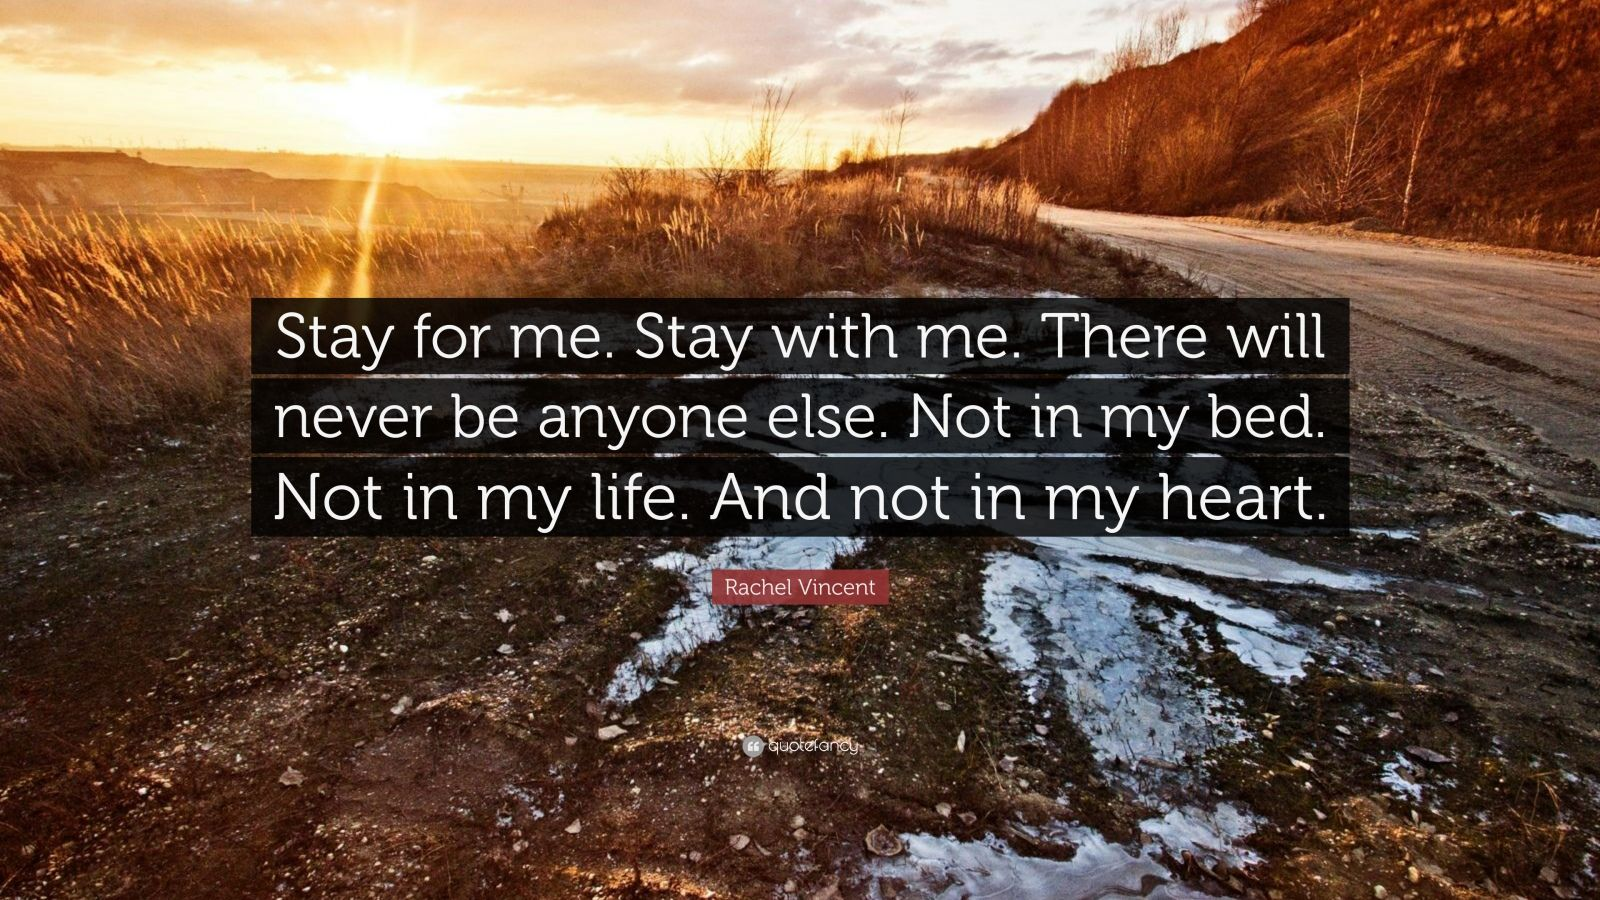 """Rachel Vincent Quote: """"Stay for me. Stay with me. There will never be anyone else. Not in my bed. Not in my life. And not in my heart."""""""